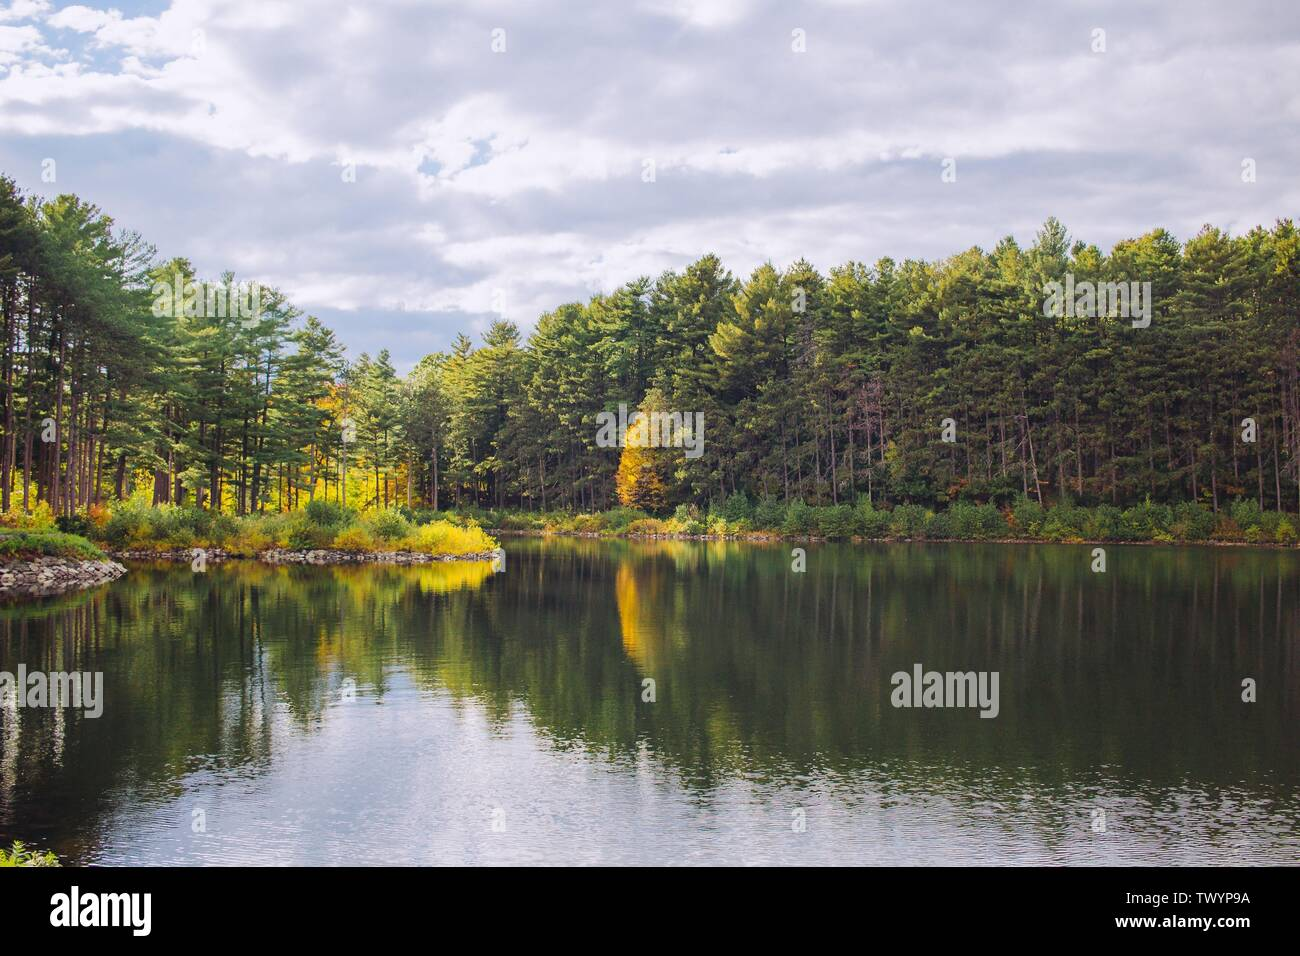 A beautiful lake in a forest with trees reflections in the water and cloudy sky - Stock Image